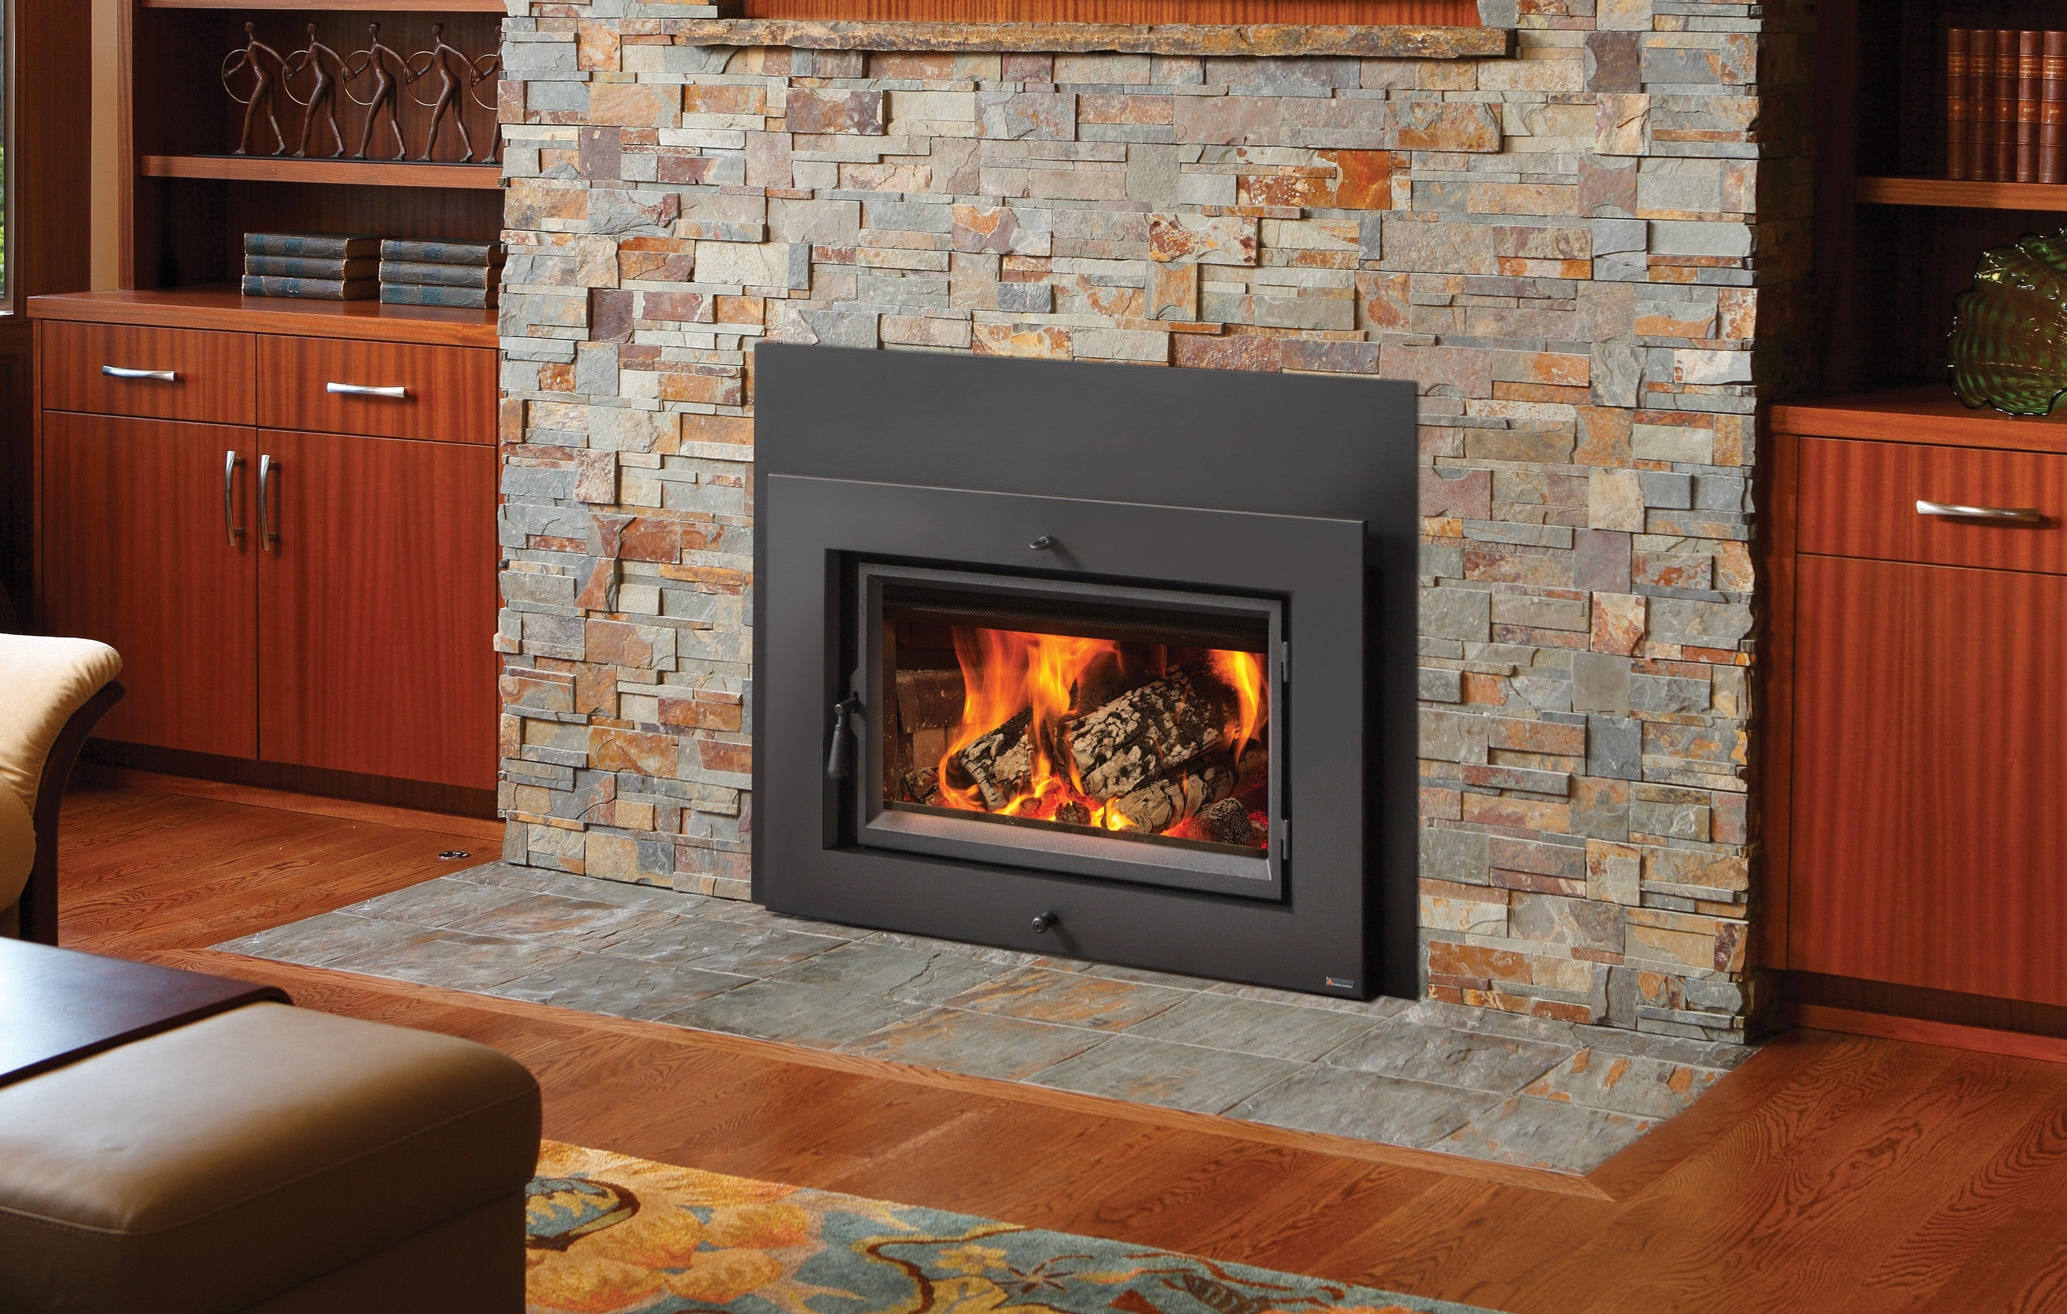 Fireplace xtrordinair large flush wood hybrid fire inserts for New construction wood burning fireplace